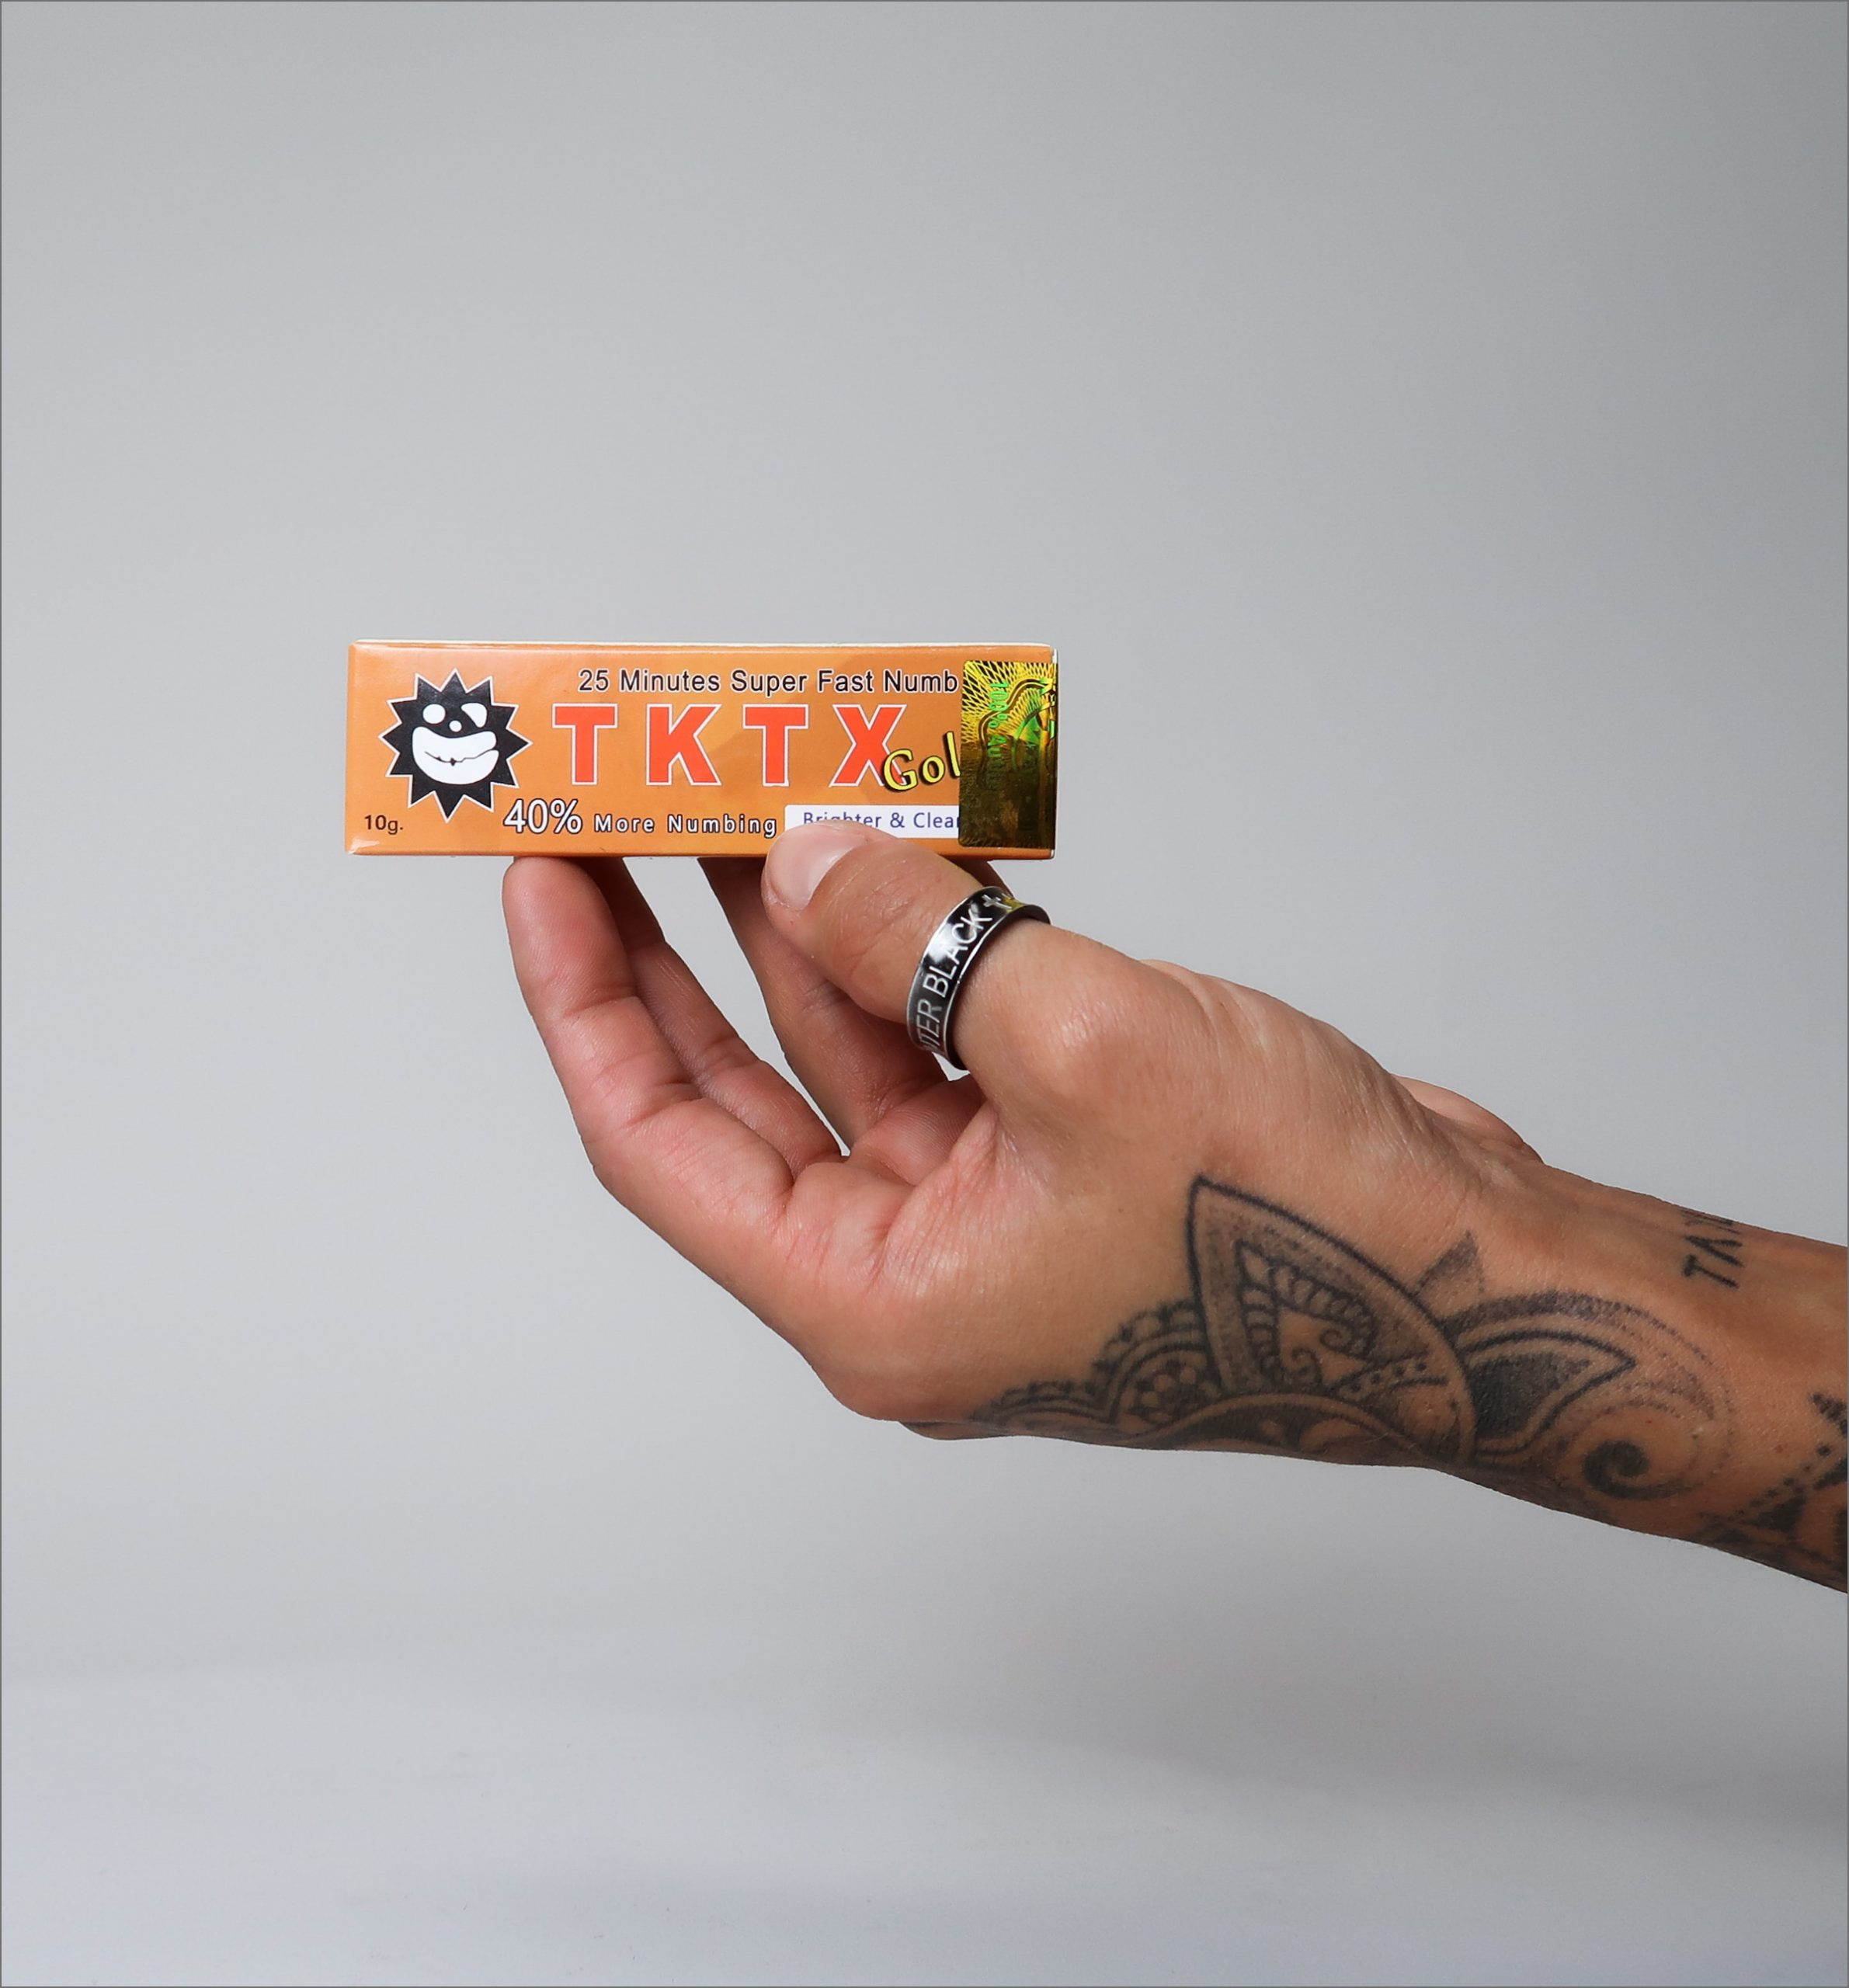 What is the strongest TKTX numbing cream?